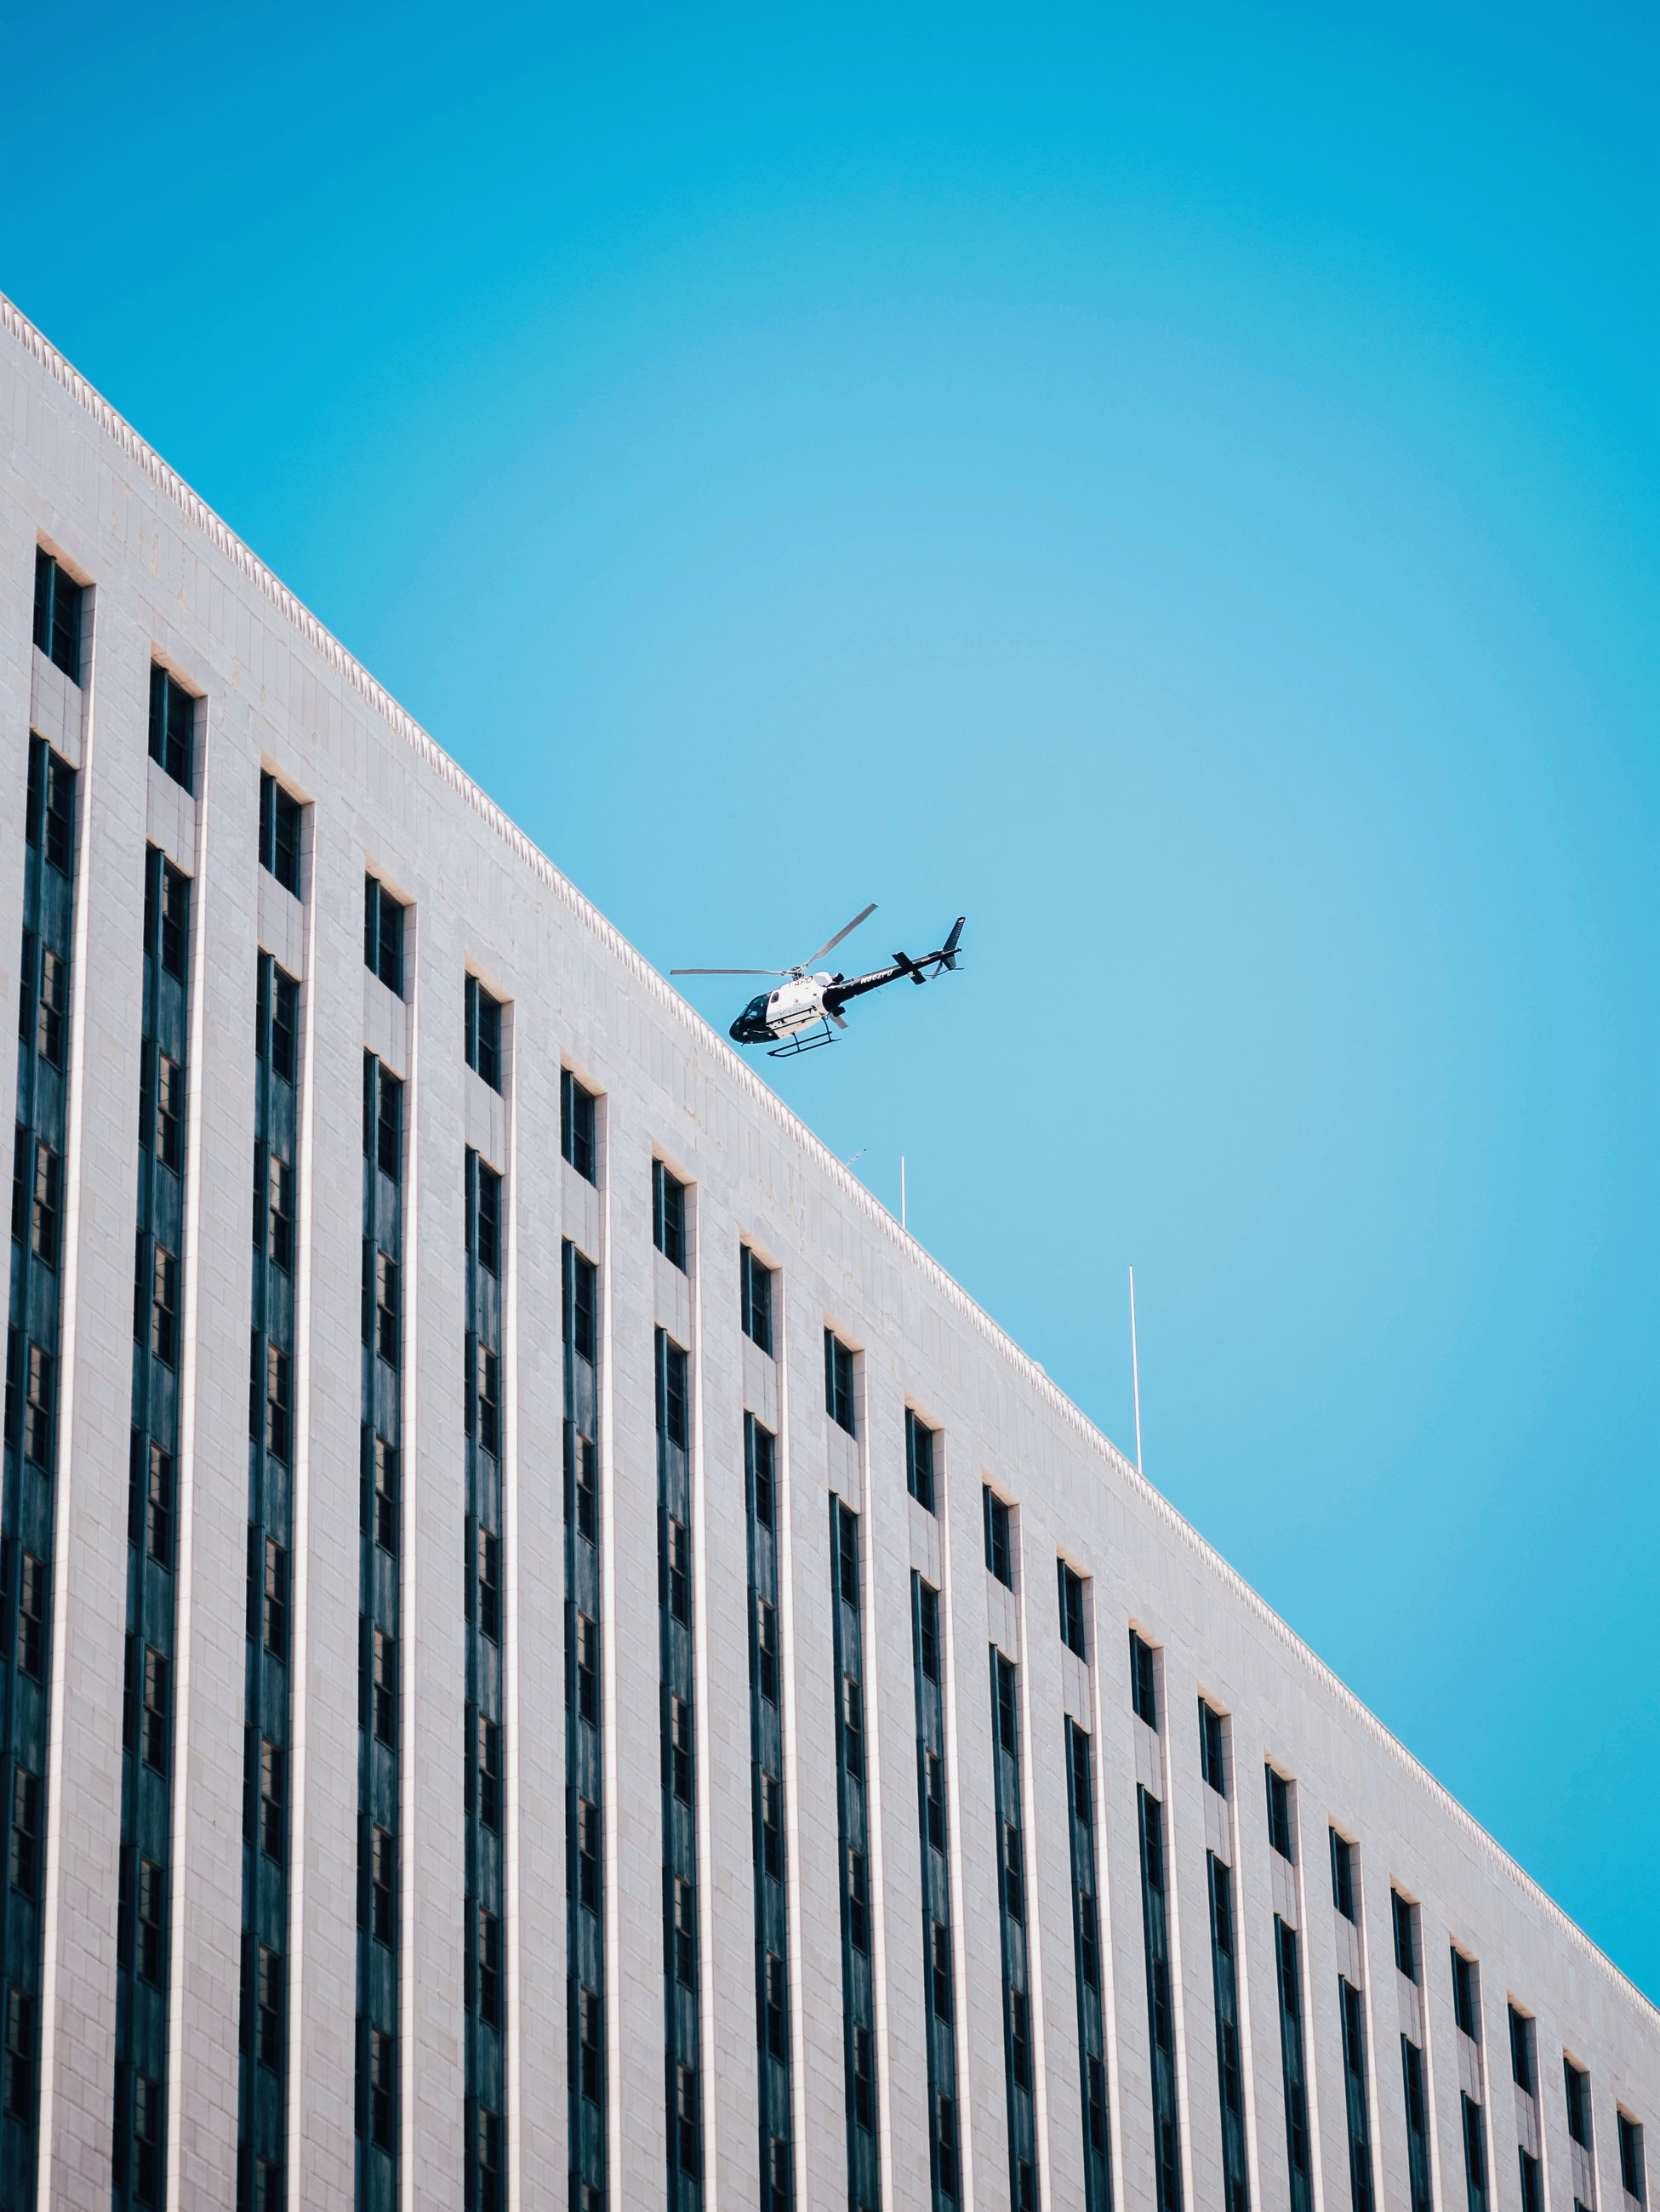 architecture, low angle view, built structure, building exterior, clear sky, day, blue, outdoors, airplane, flying, no people, city, modern, sky, animal themes